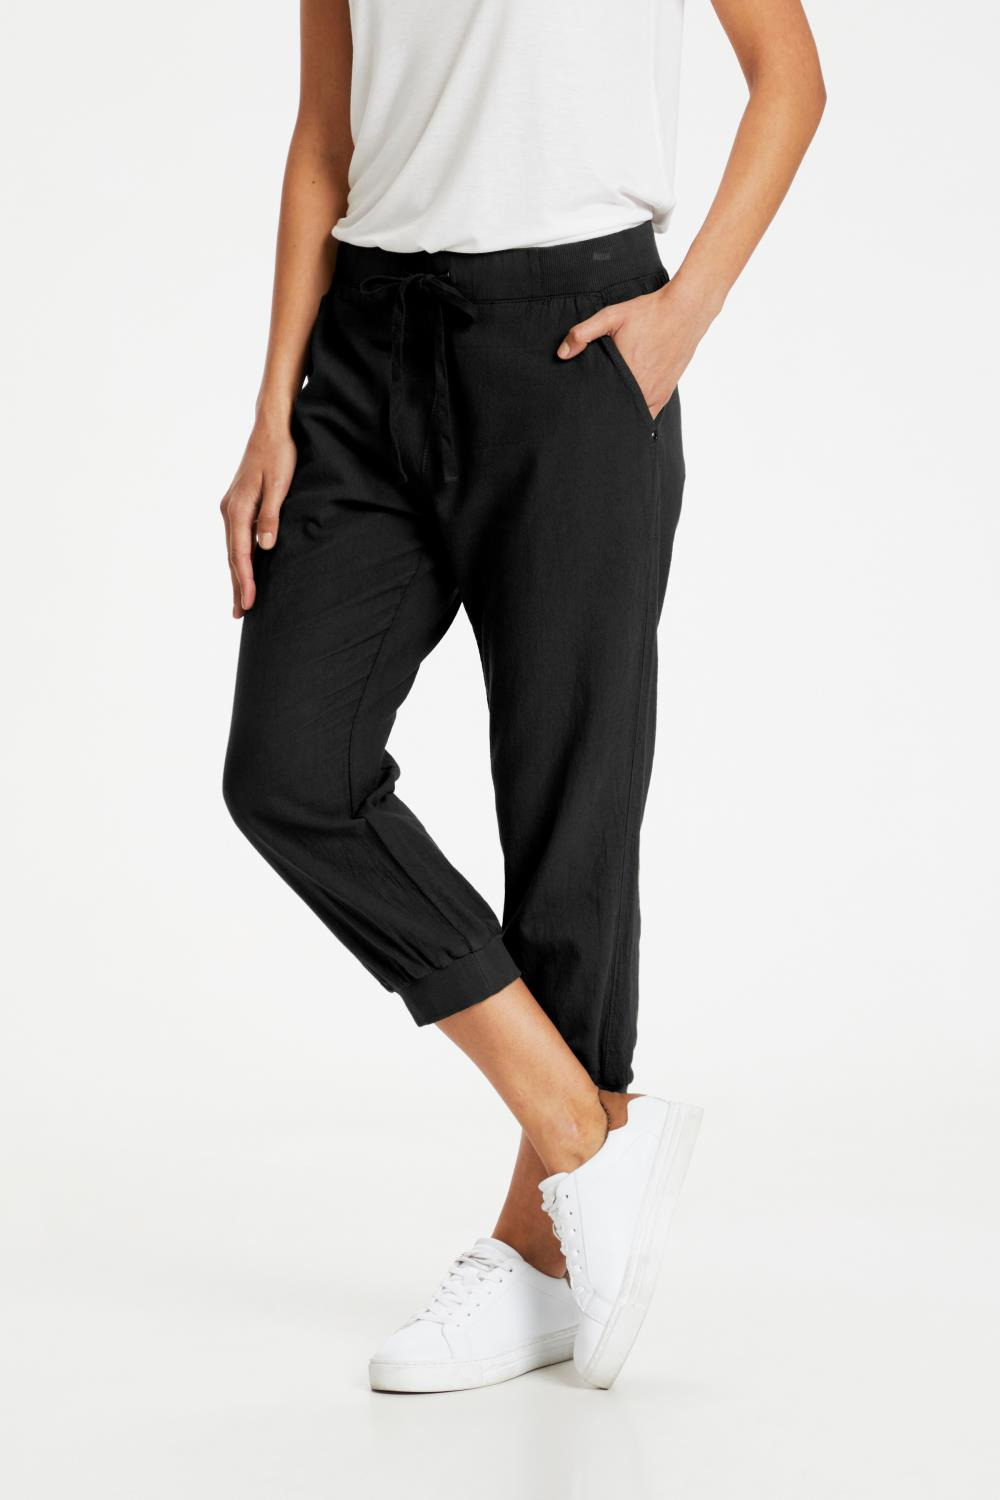 gallery-2238-for-10502803-black